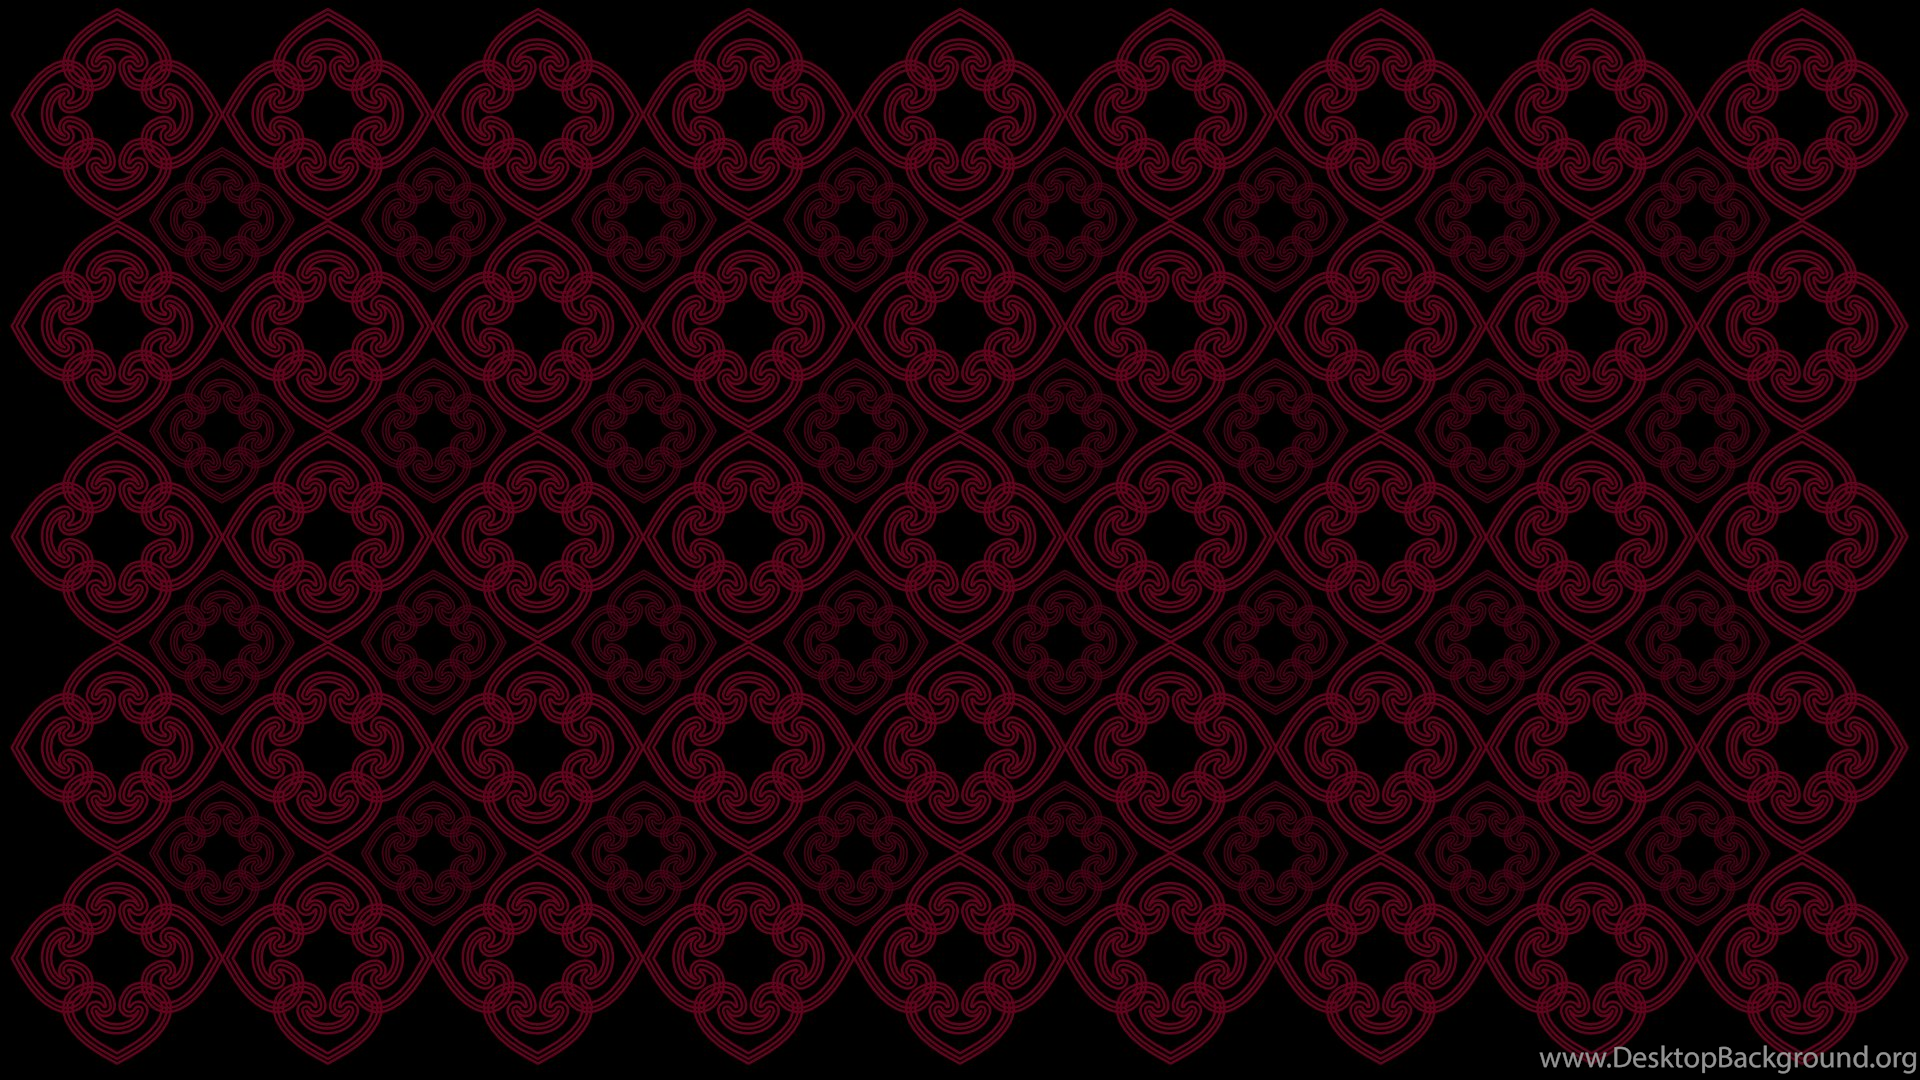 Dark Red Backgrounds Patterns Invitation Templates Desktop Background